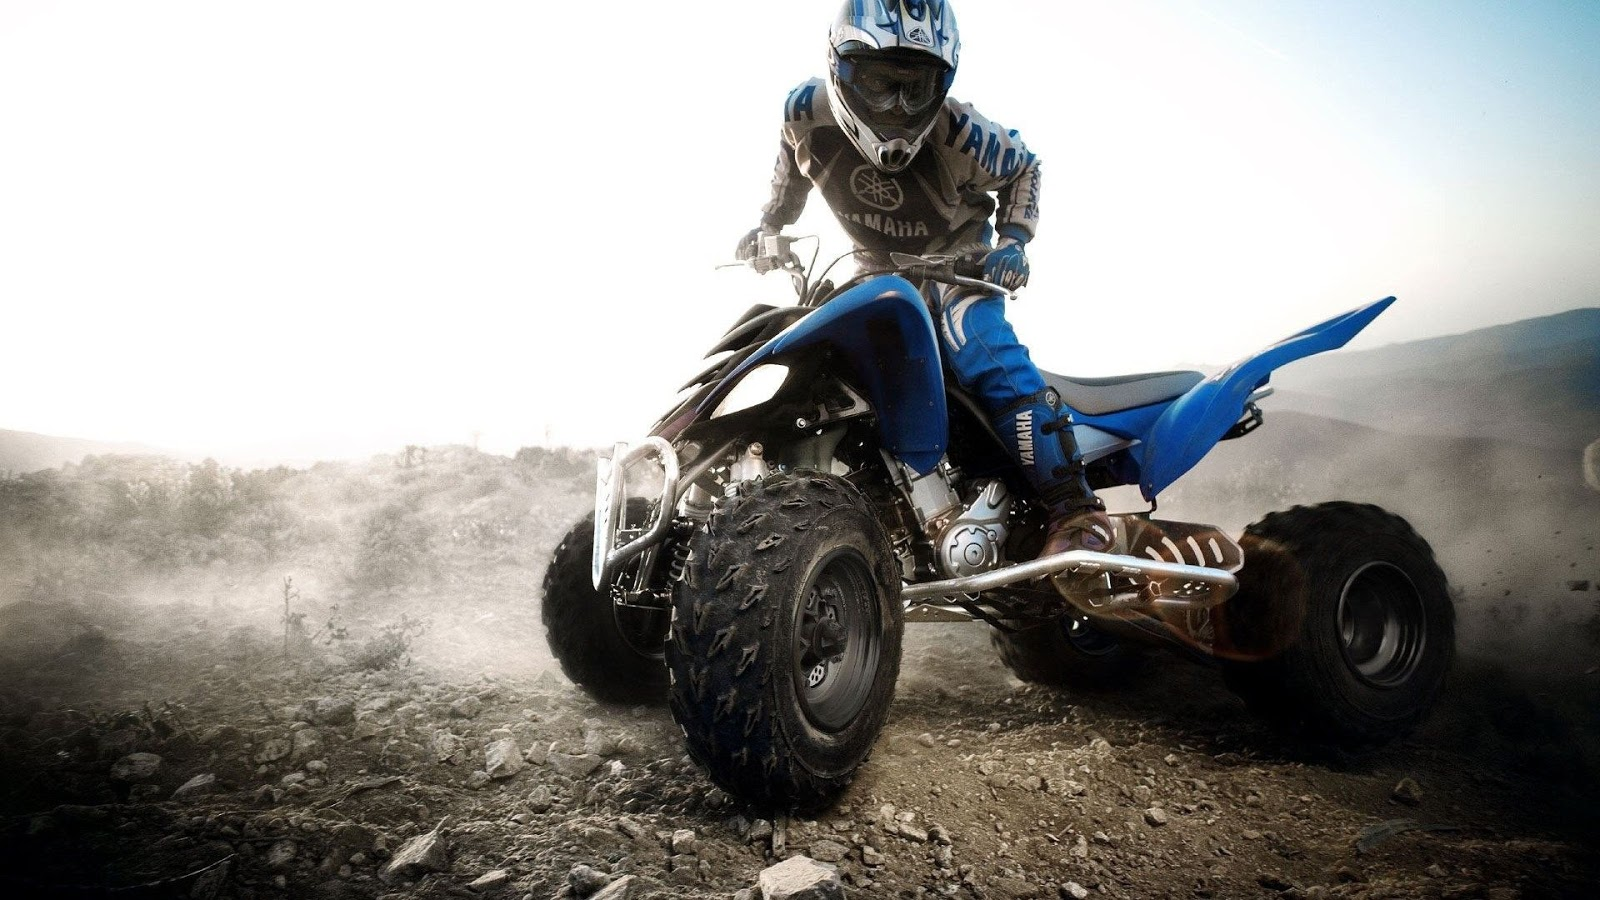 I have always found it so something I love to do is ride quads